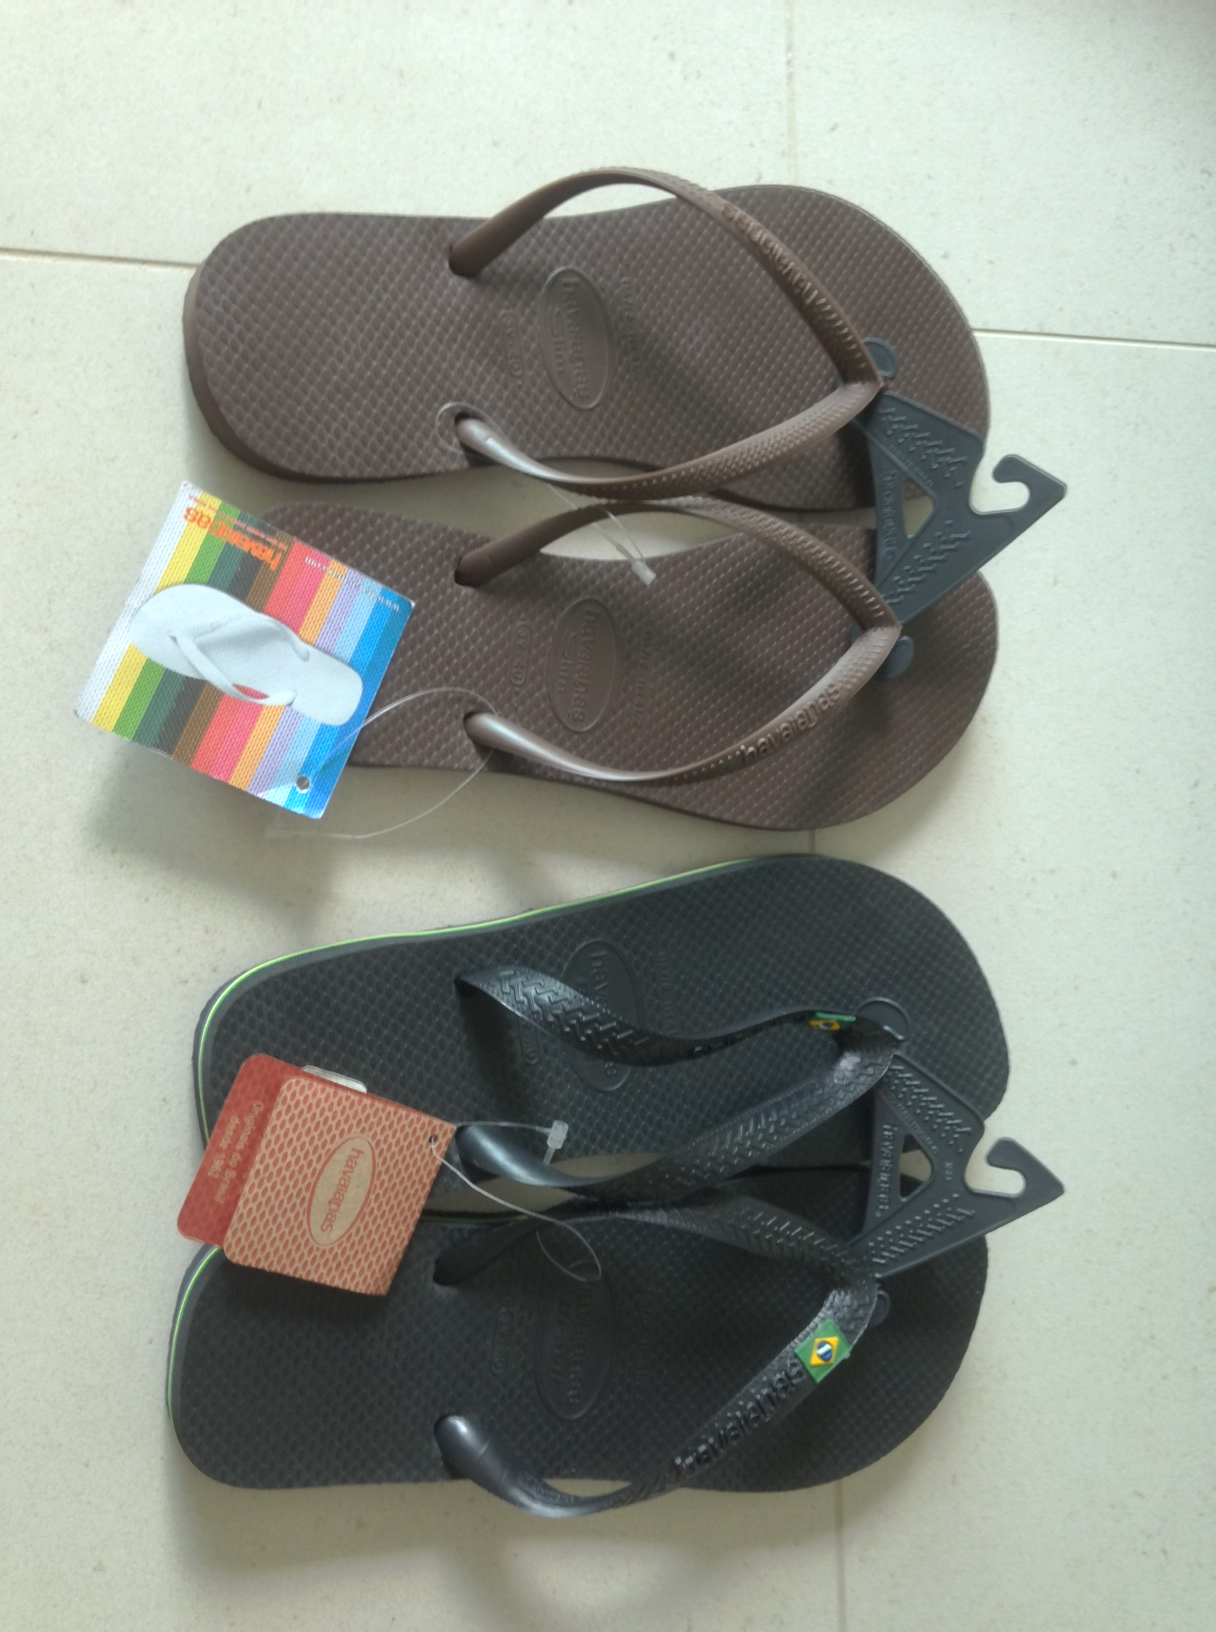 Universo – Havaianas Outlet in Bali